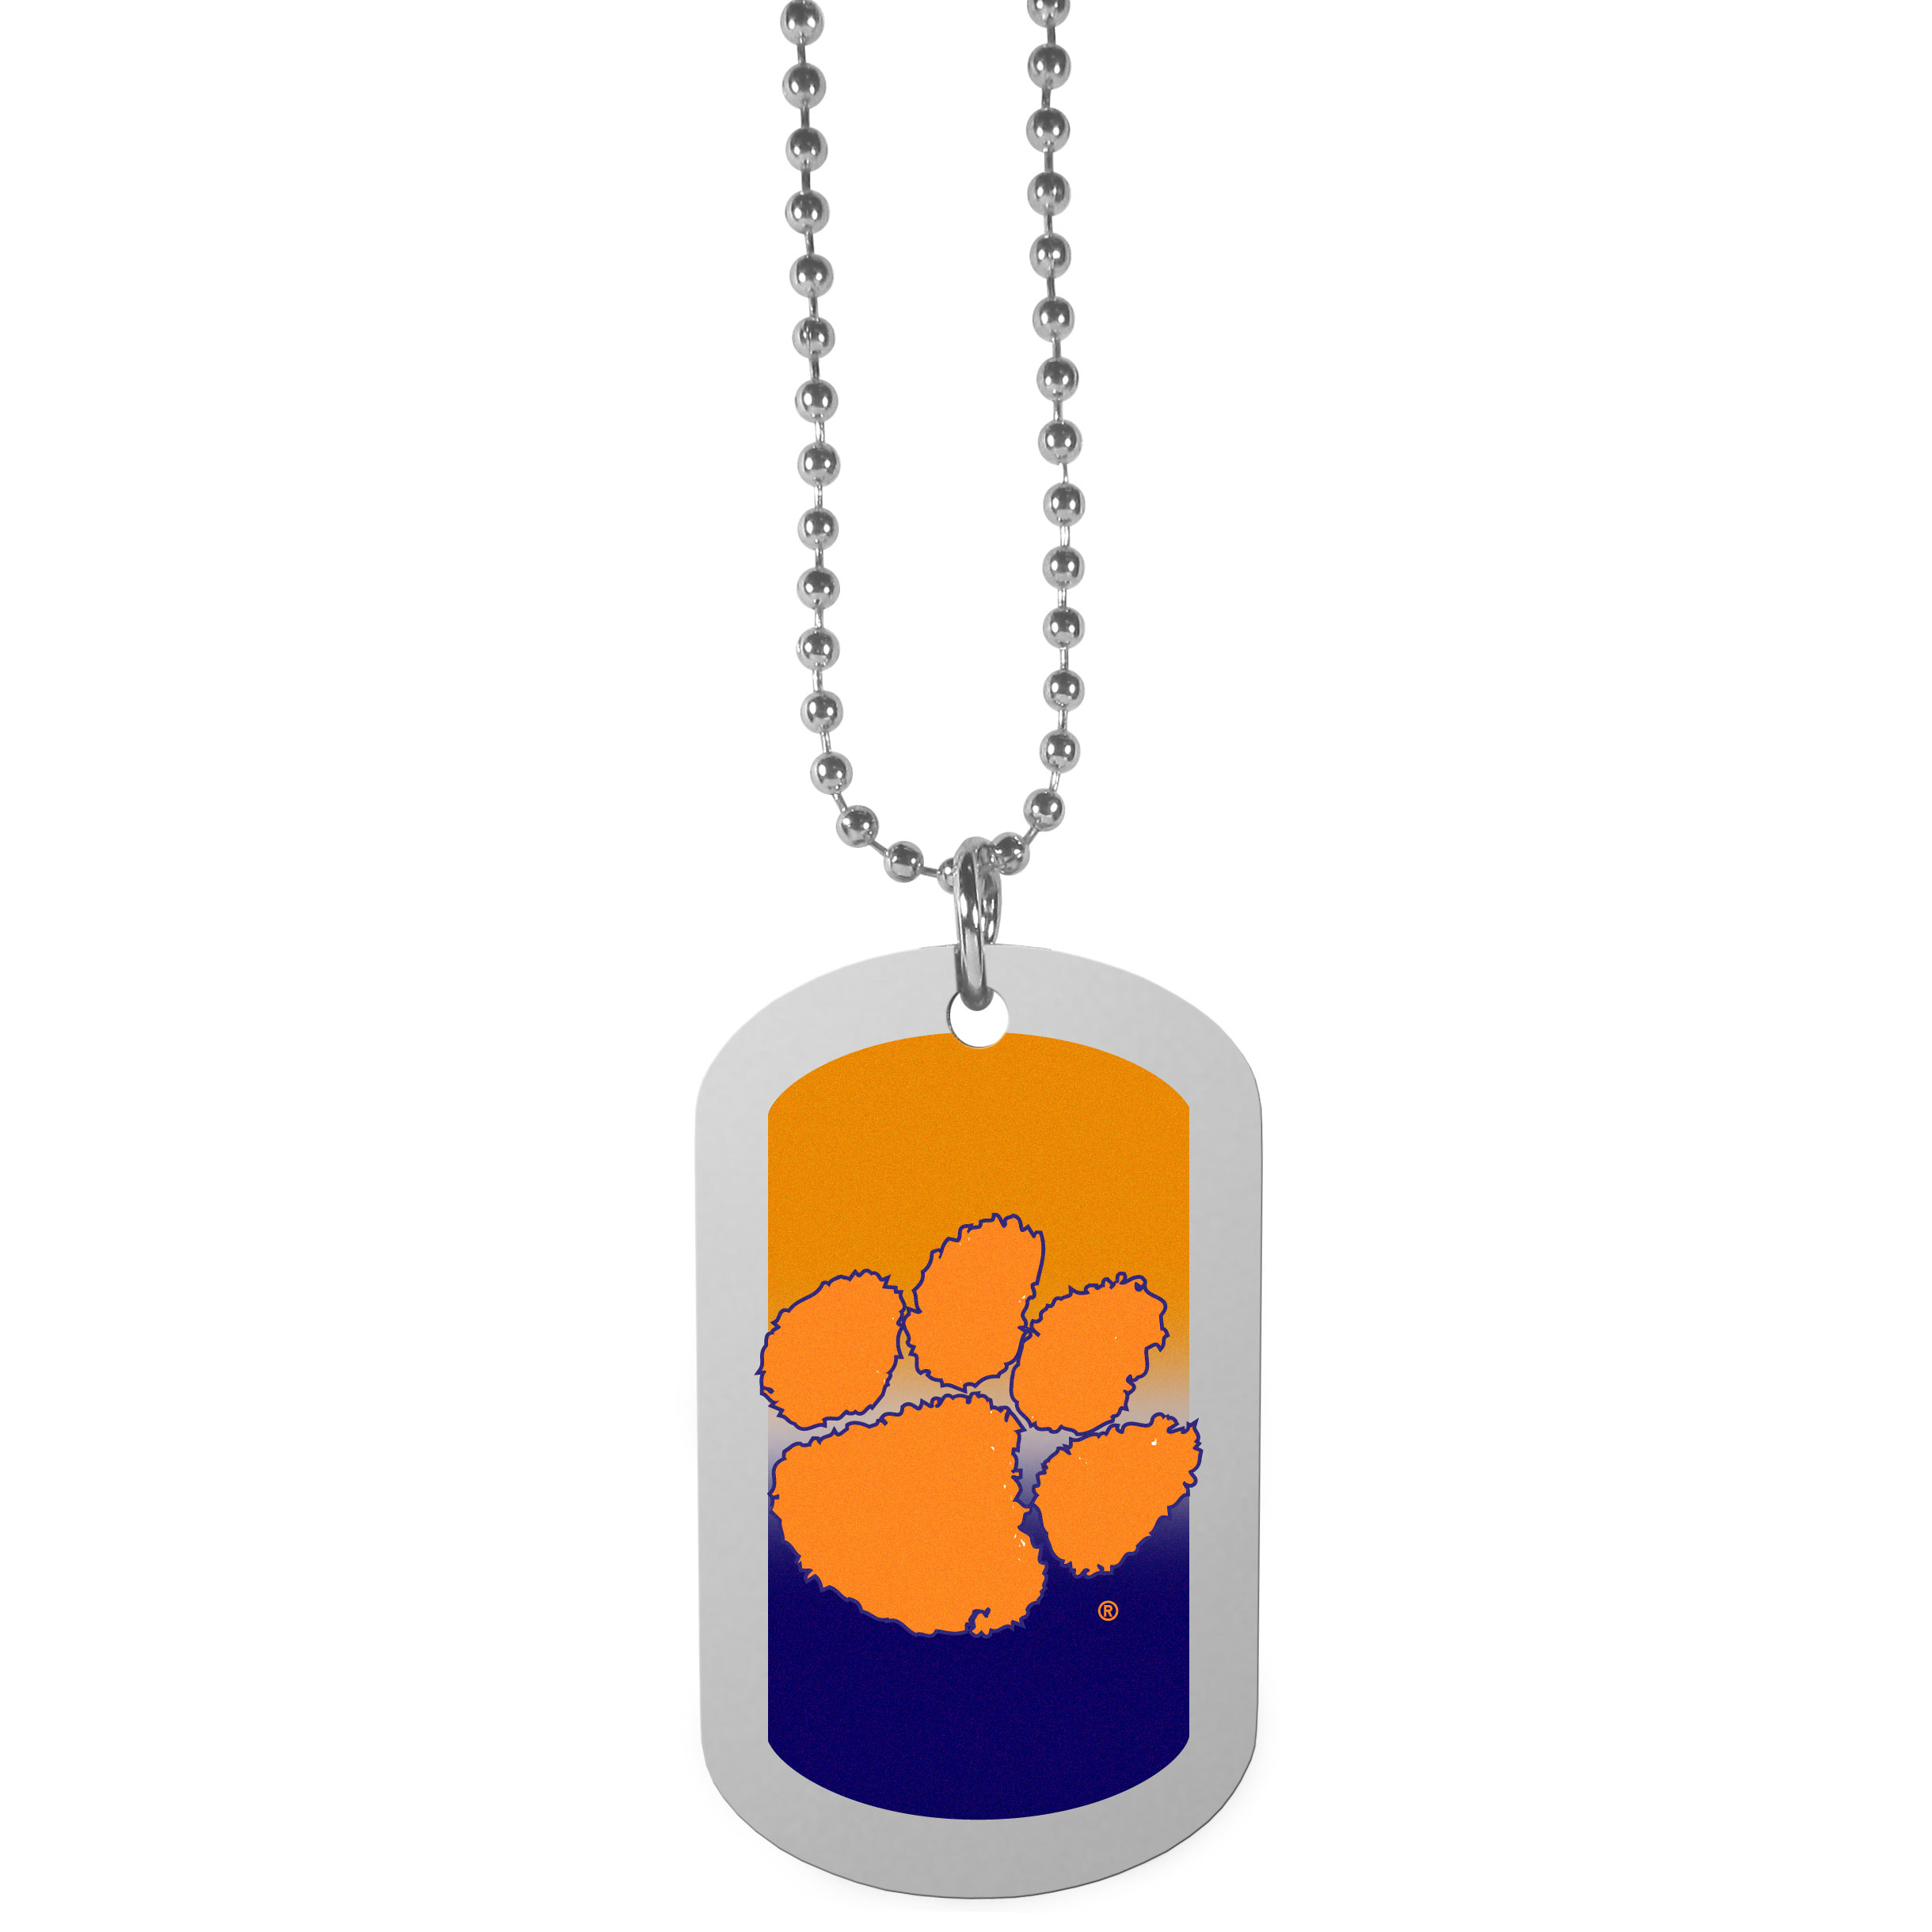 Clemson Tigers Team Tag Necklace - Dog tag necklaces are a fashion statement that is here to stay. The sporty version of the classic tag features a gradient print in team colors featuring a full color team logo over a high polish tag to create a bold and sporty look. The tag comes on a 26 inch ball chain with a ball and joint clasp. Any Clemson Tigers would be proud to wear this attractive fashion accessory.